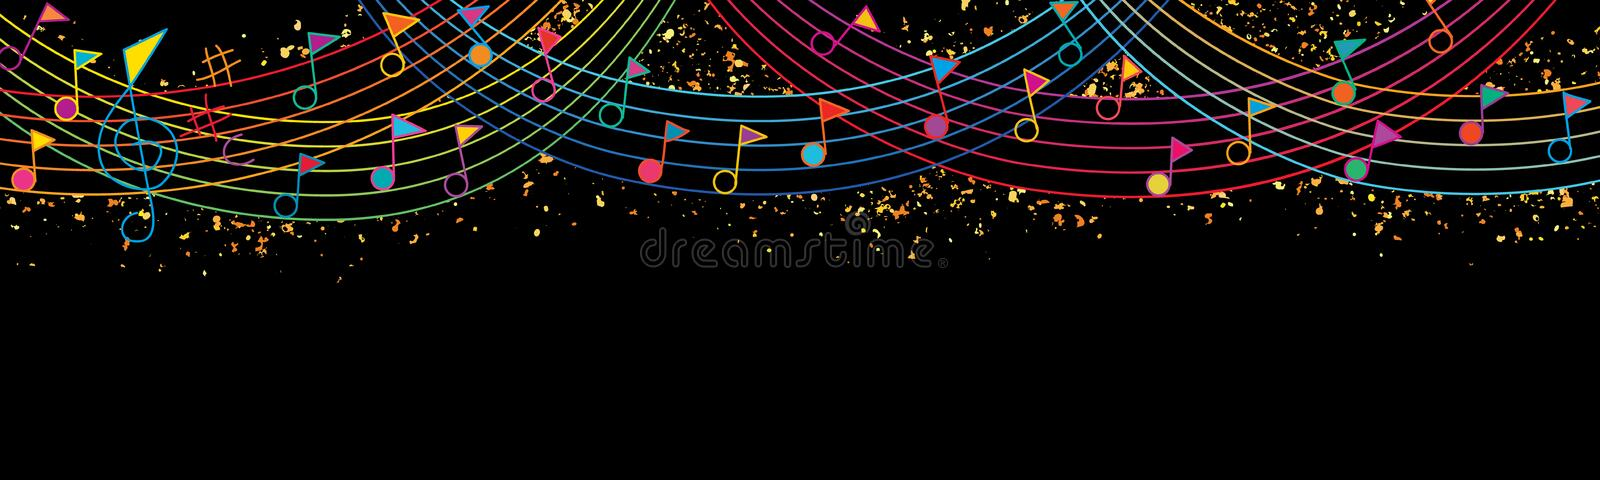 Music note flag top celebration rainbow line giltter banner. This illustration is abstract flag hang festival celebration with music note flag concept and vector illustration